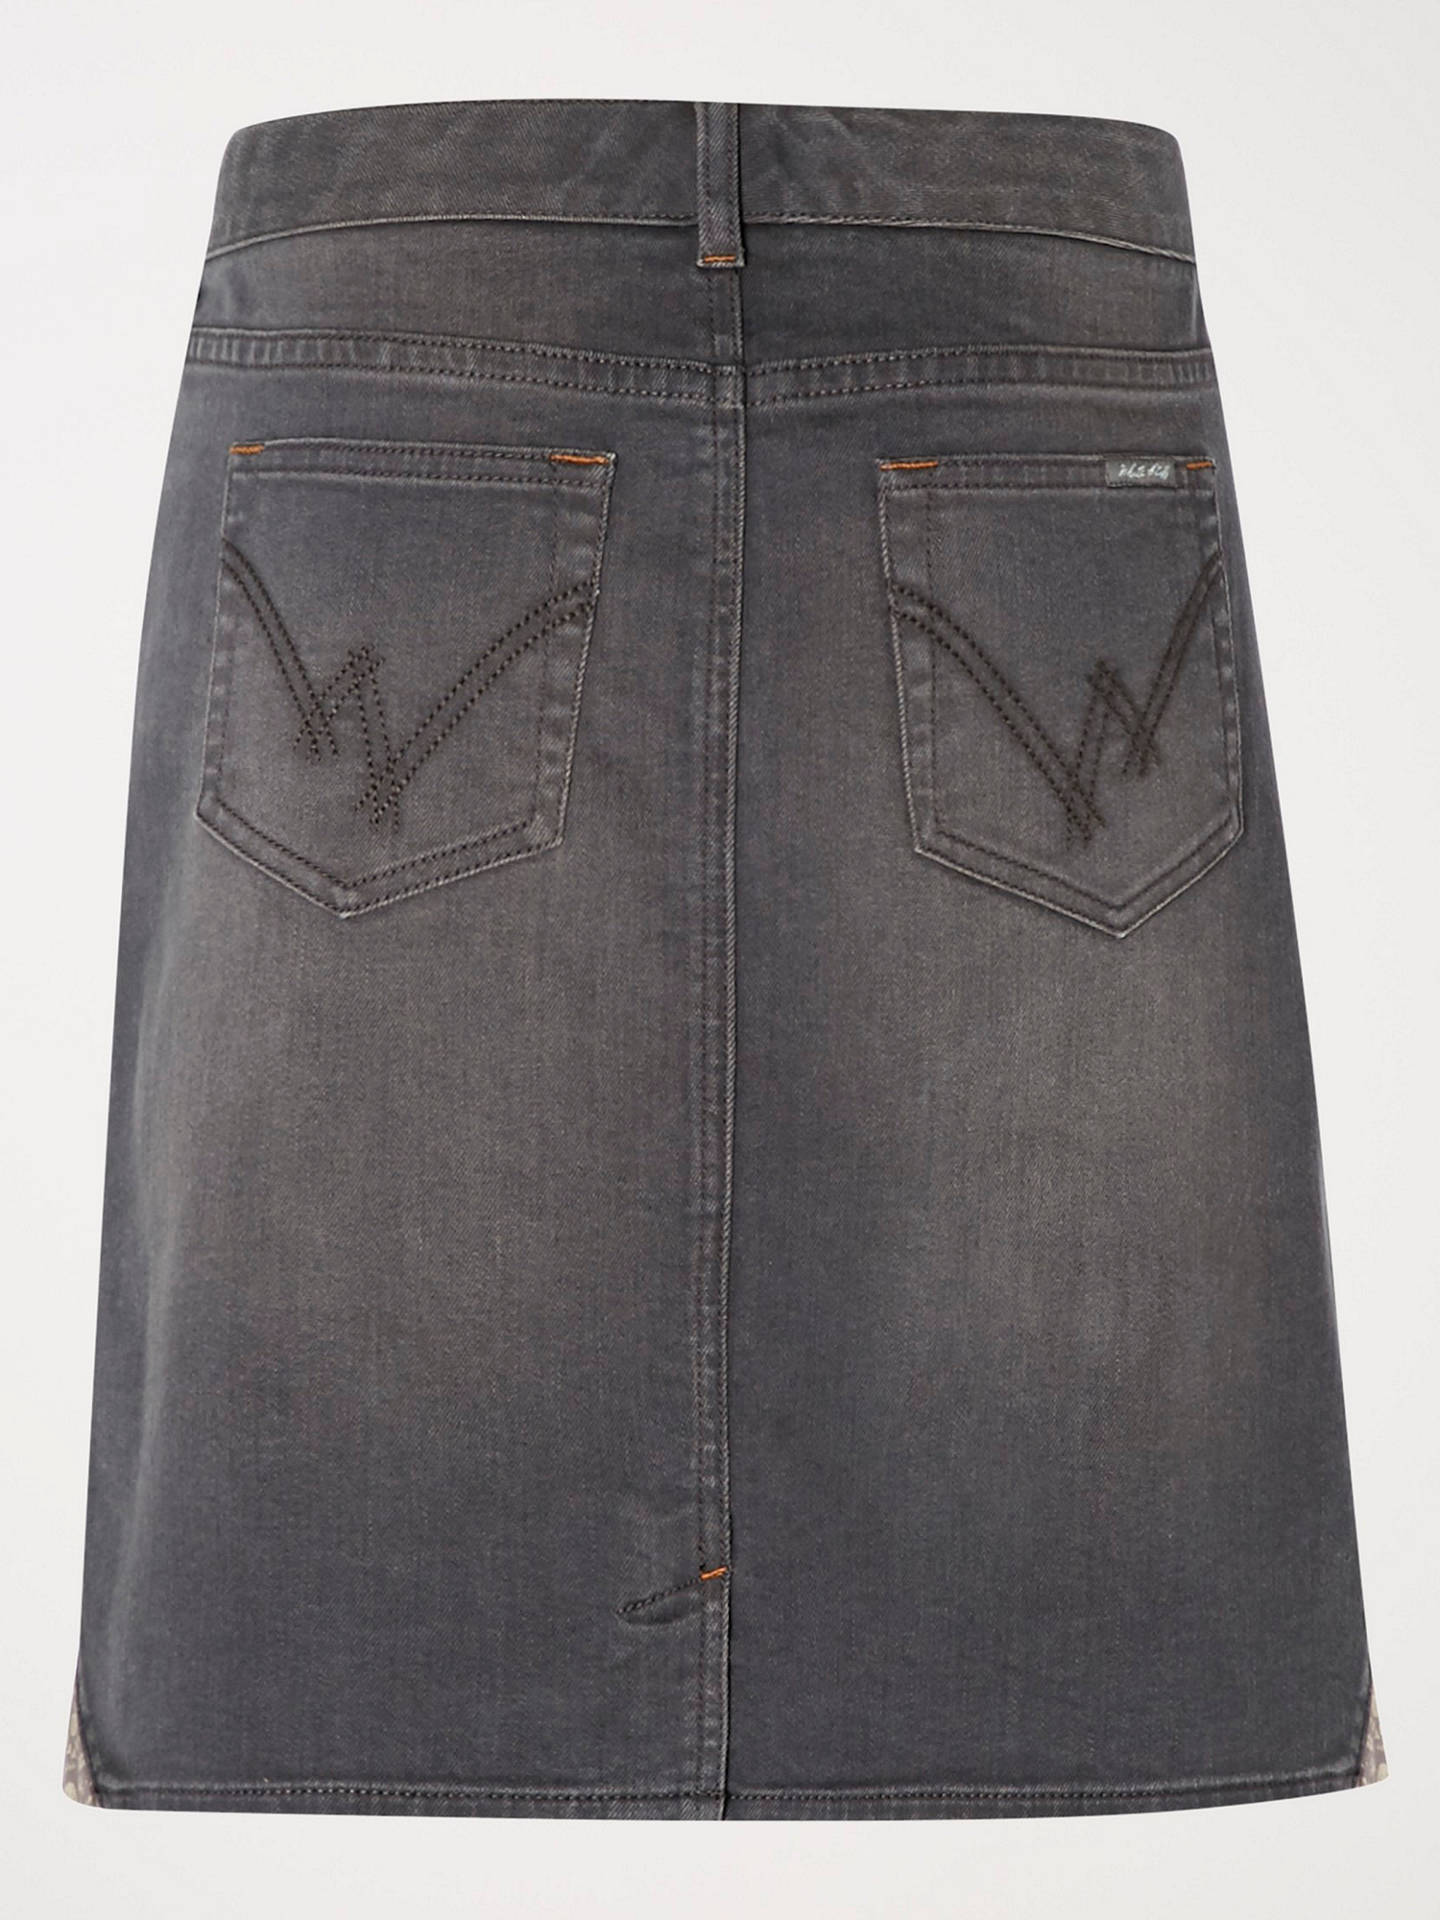 29d0ee5350 ... Buy White Stuff Country Walk Skirt, Wilding Grey, 6 Online at  johnlewis.com ...